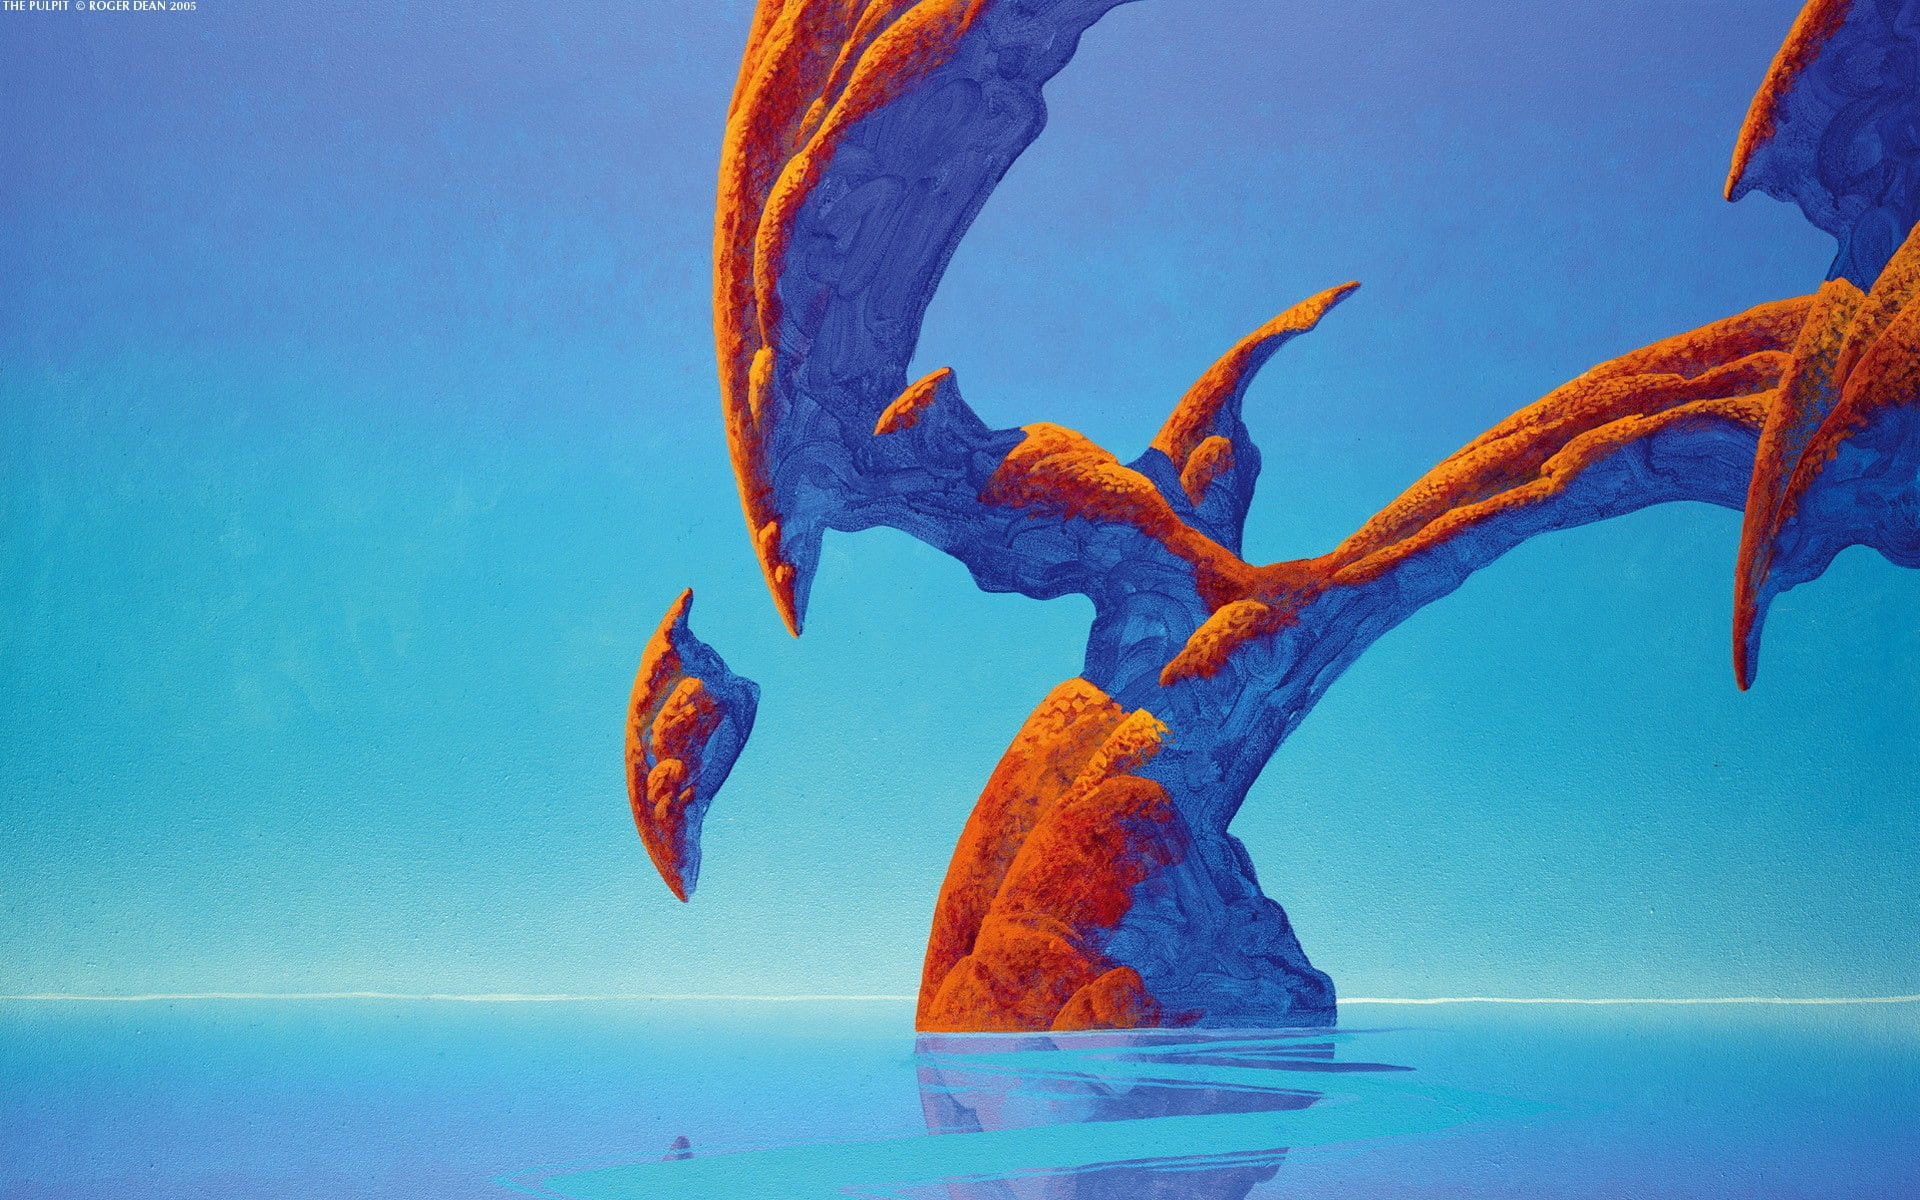 1920x1200 Roger Dean, rock formation, fantasy art, sea, water, blue, nature